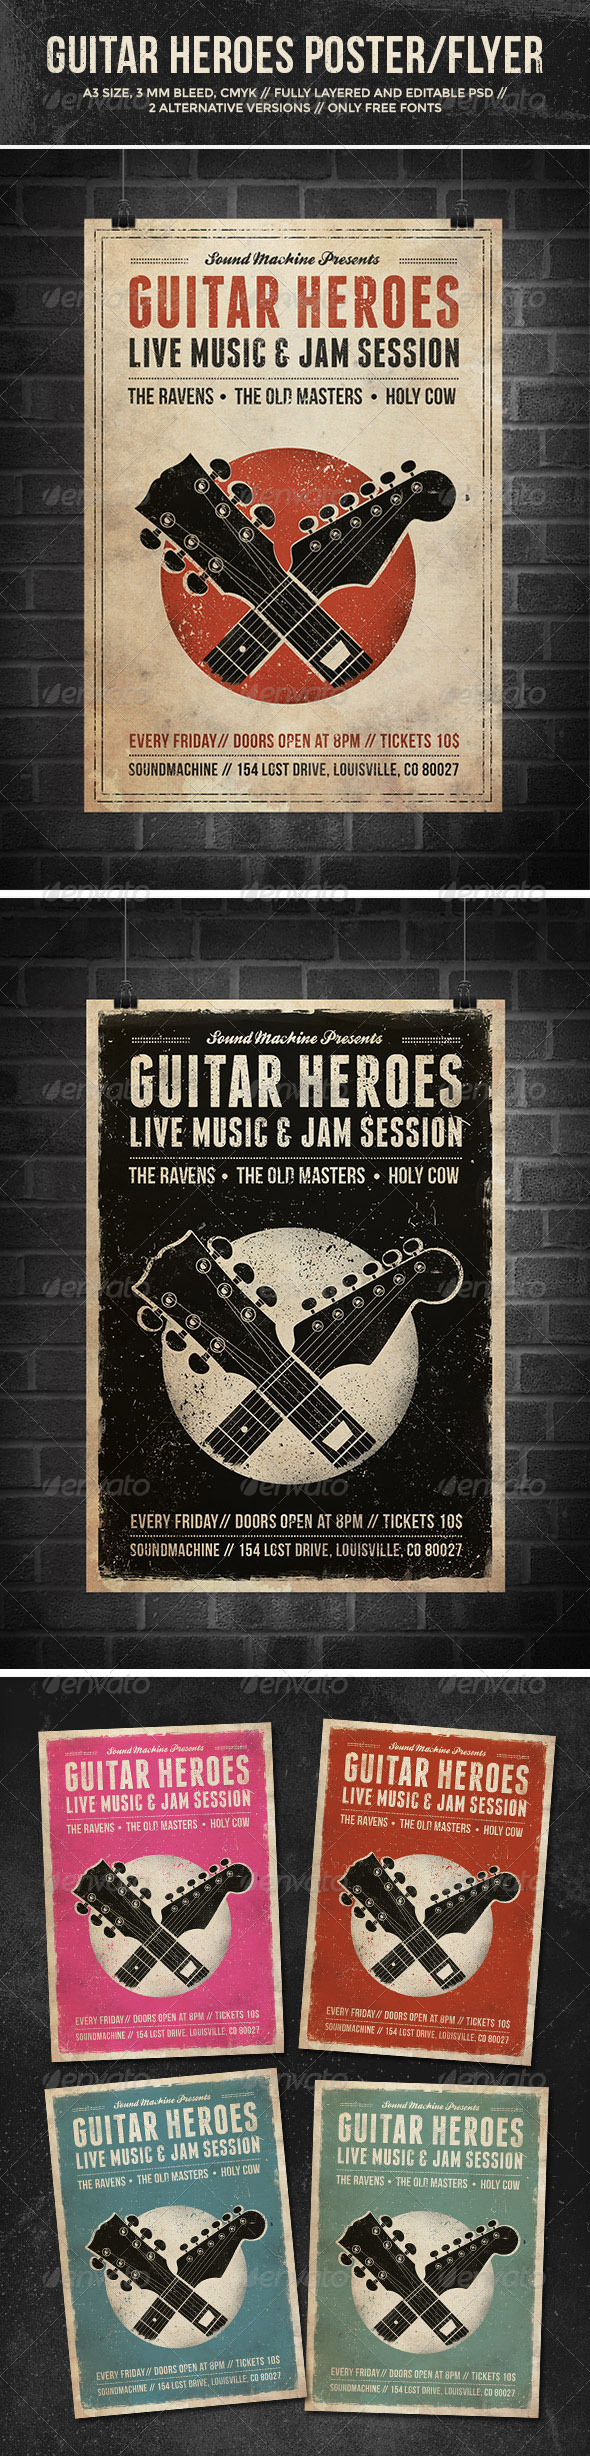 GraphicRiver Guitar Heroes Vintage Music Poster Flyer 7228925